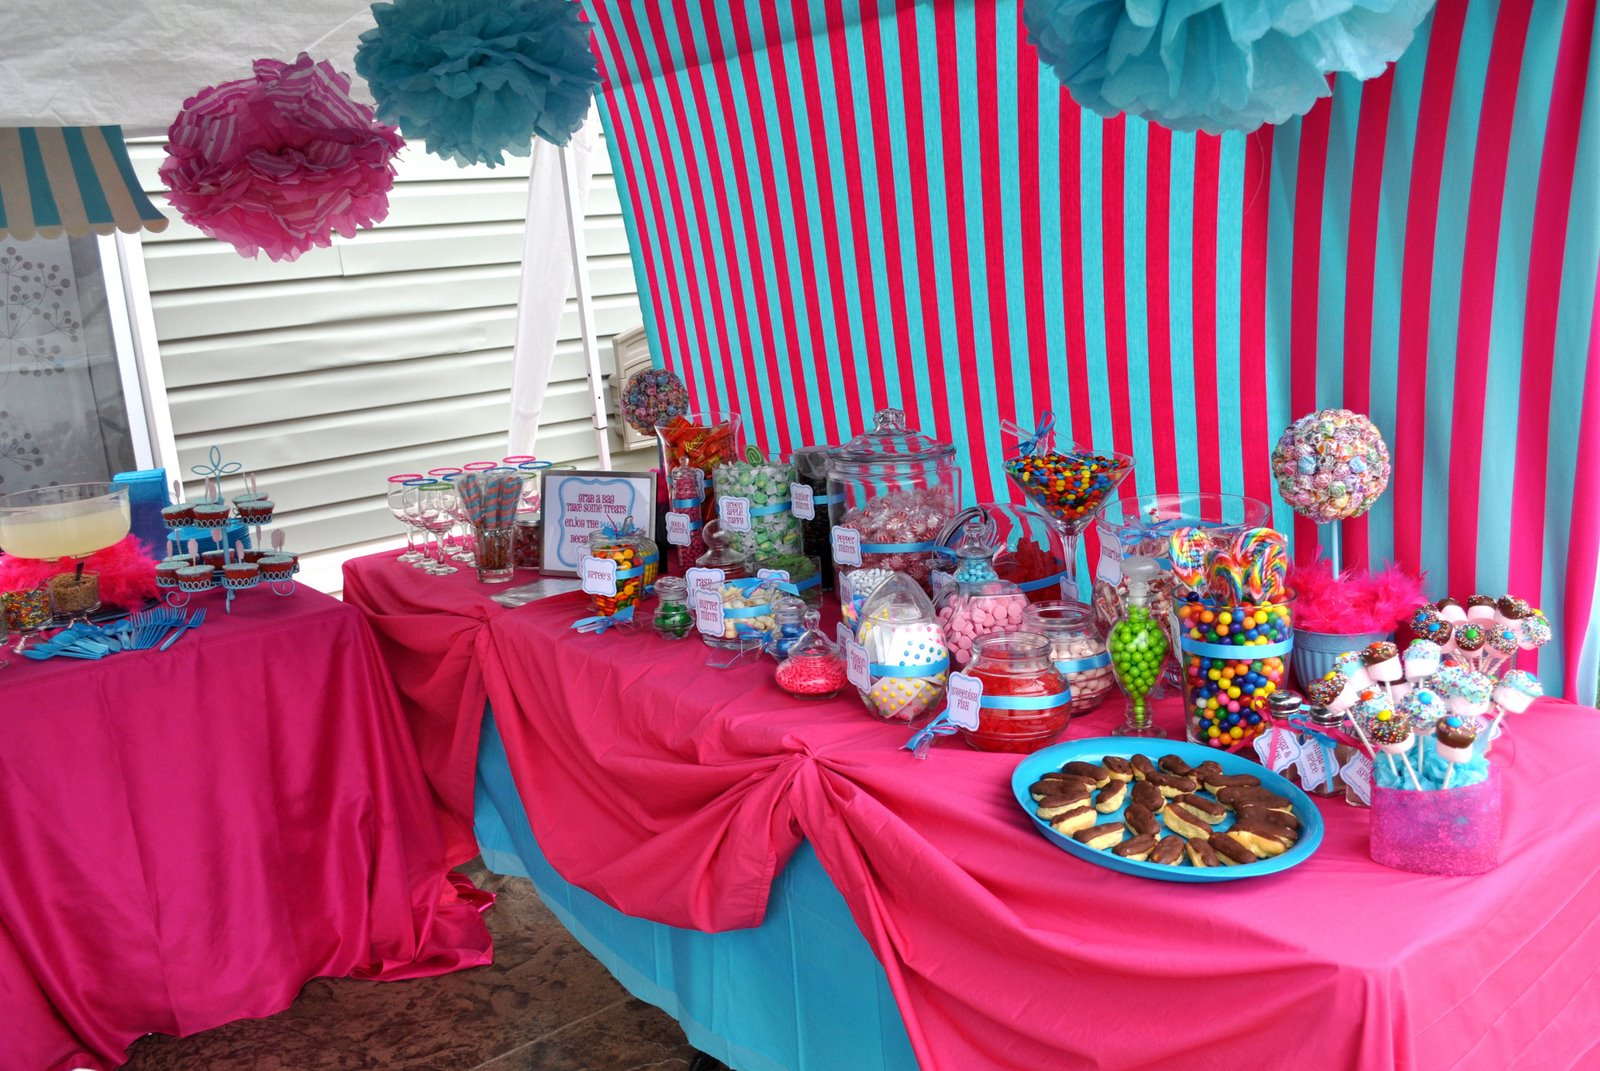 Masquerade party ideas candy buffet dollar store crafts Come home year decorations